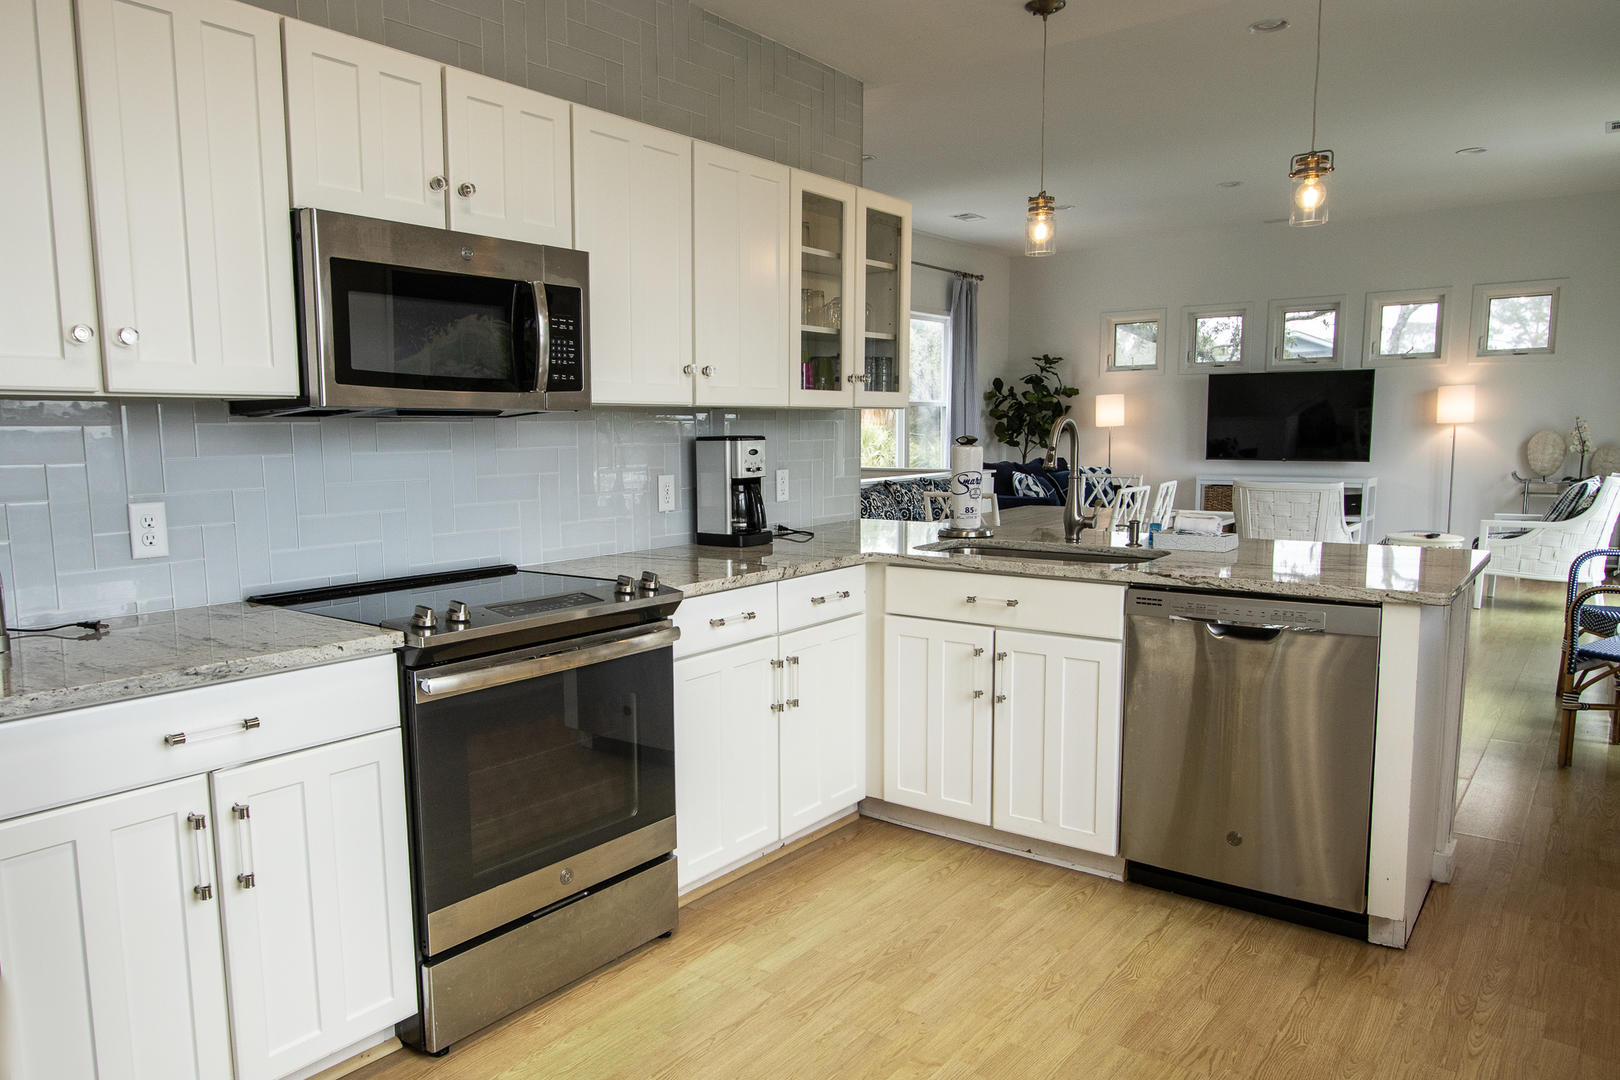 Kitchen, 2nd floor, coffee pot, 2 seats at bar, access to screened balcony